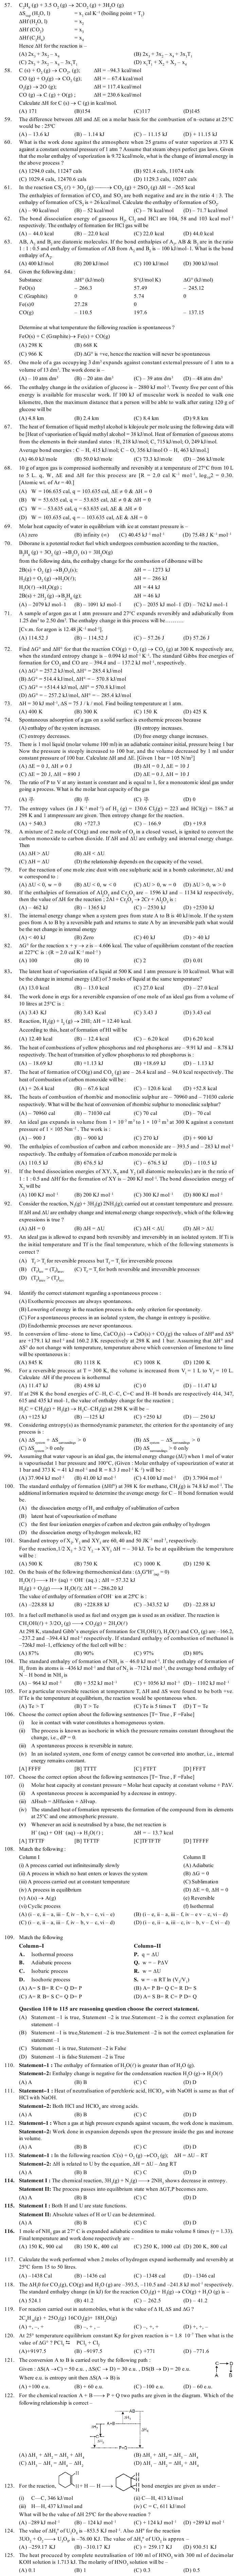 JEE and AIPMT Question Bank Chemistry - Chemical Thermodynamics